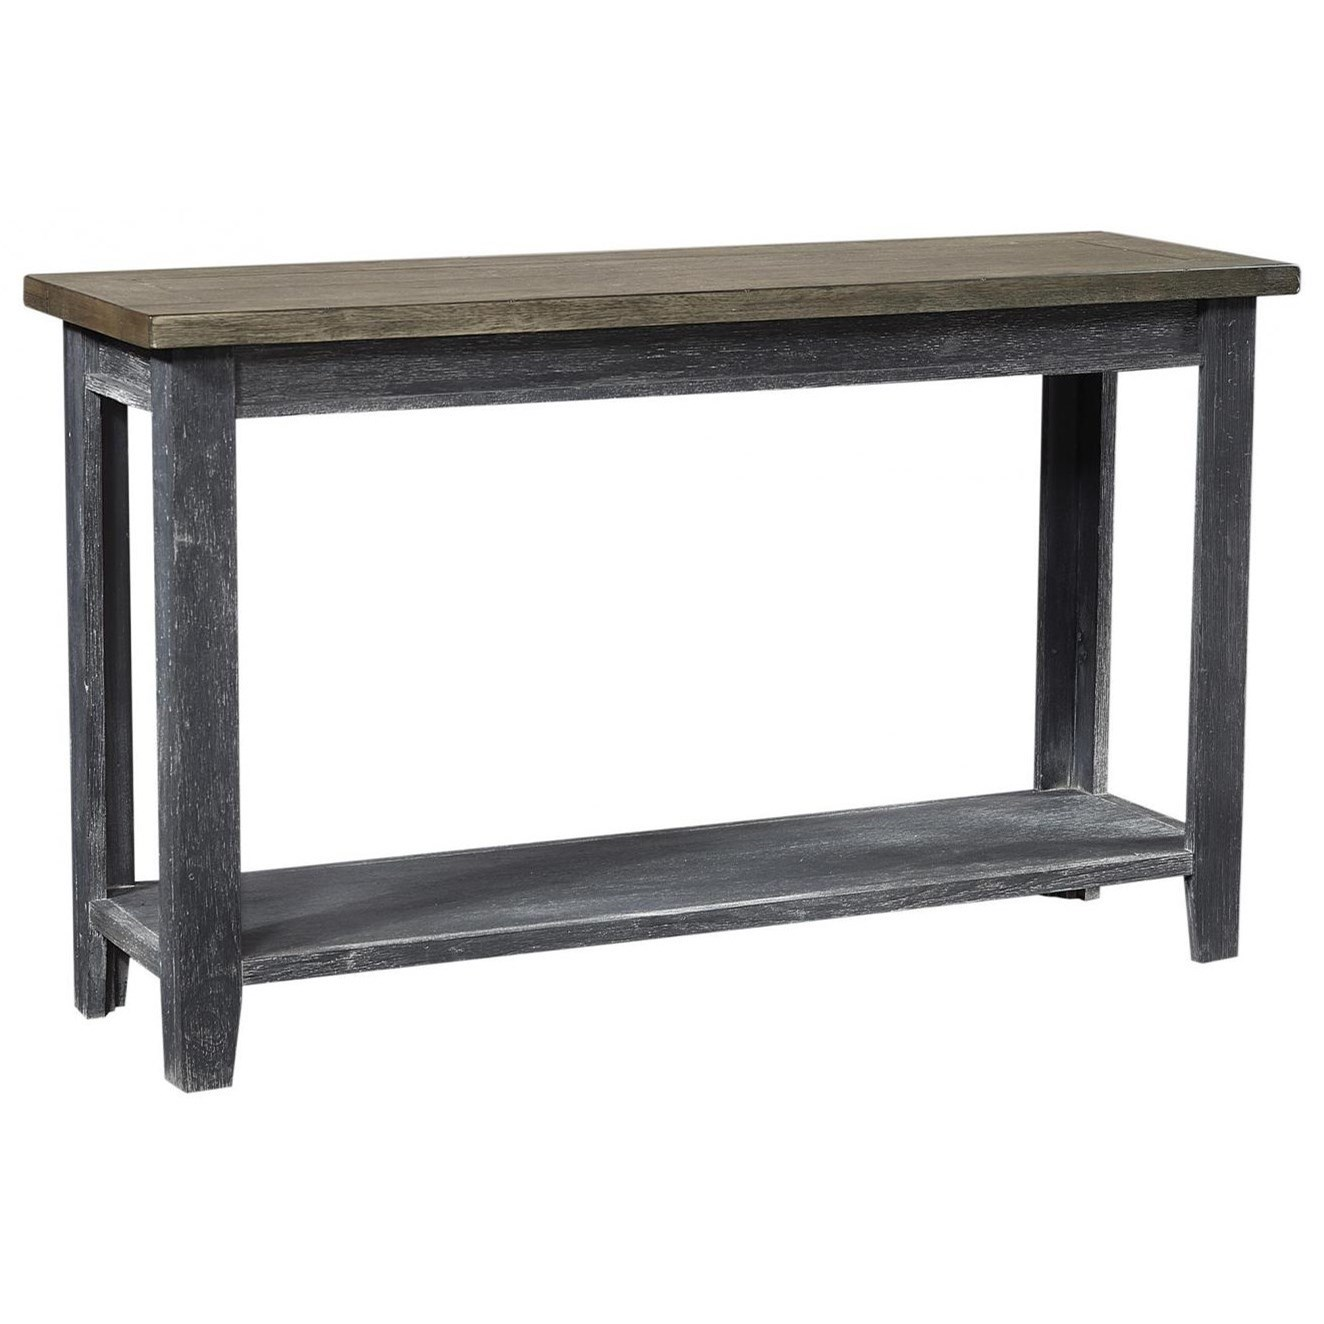 Eastport Sofa Table by Aspenhome at Darvin Furniture